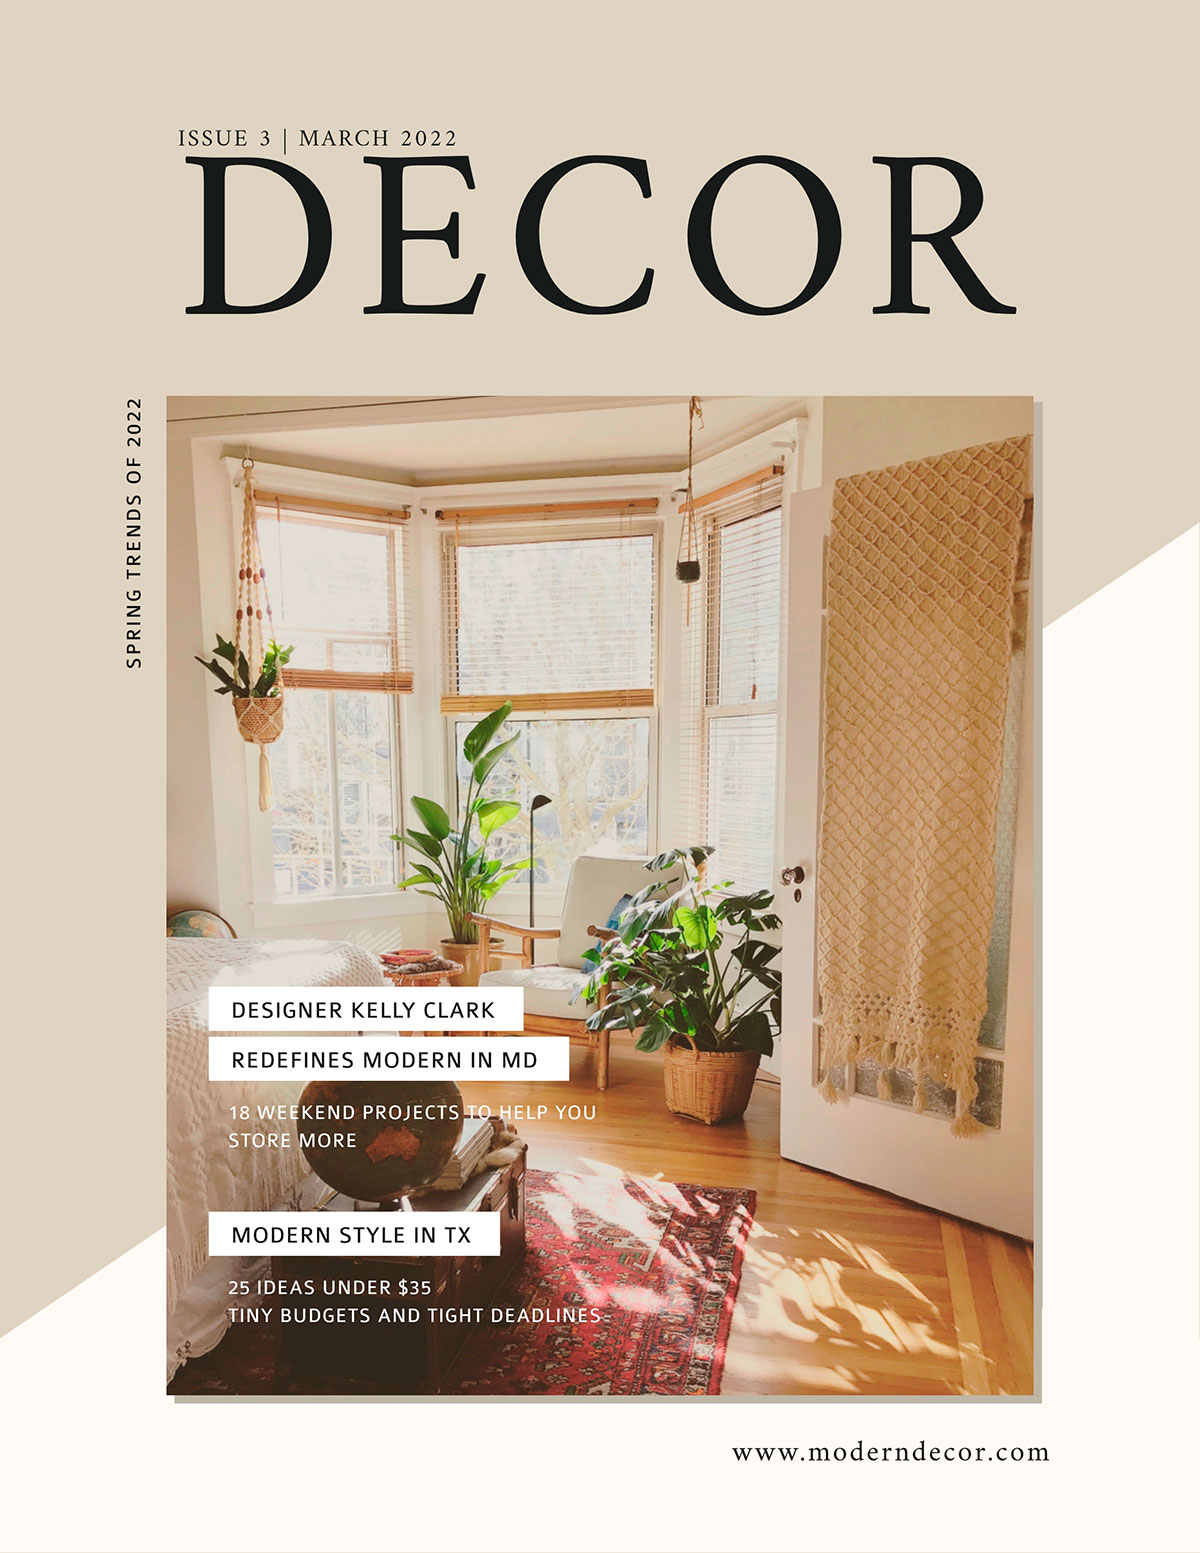 An example of a magazine cover template from Visme that uses a stock photo of a home interior at the front.